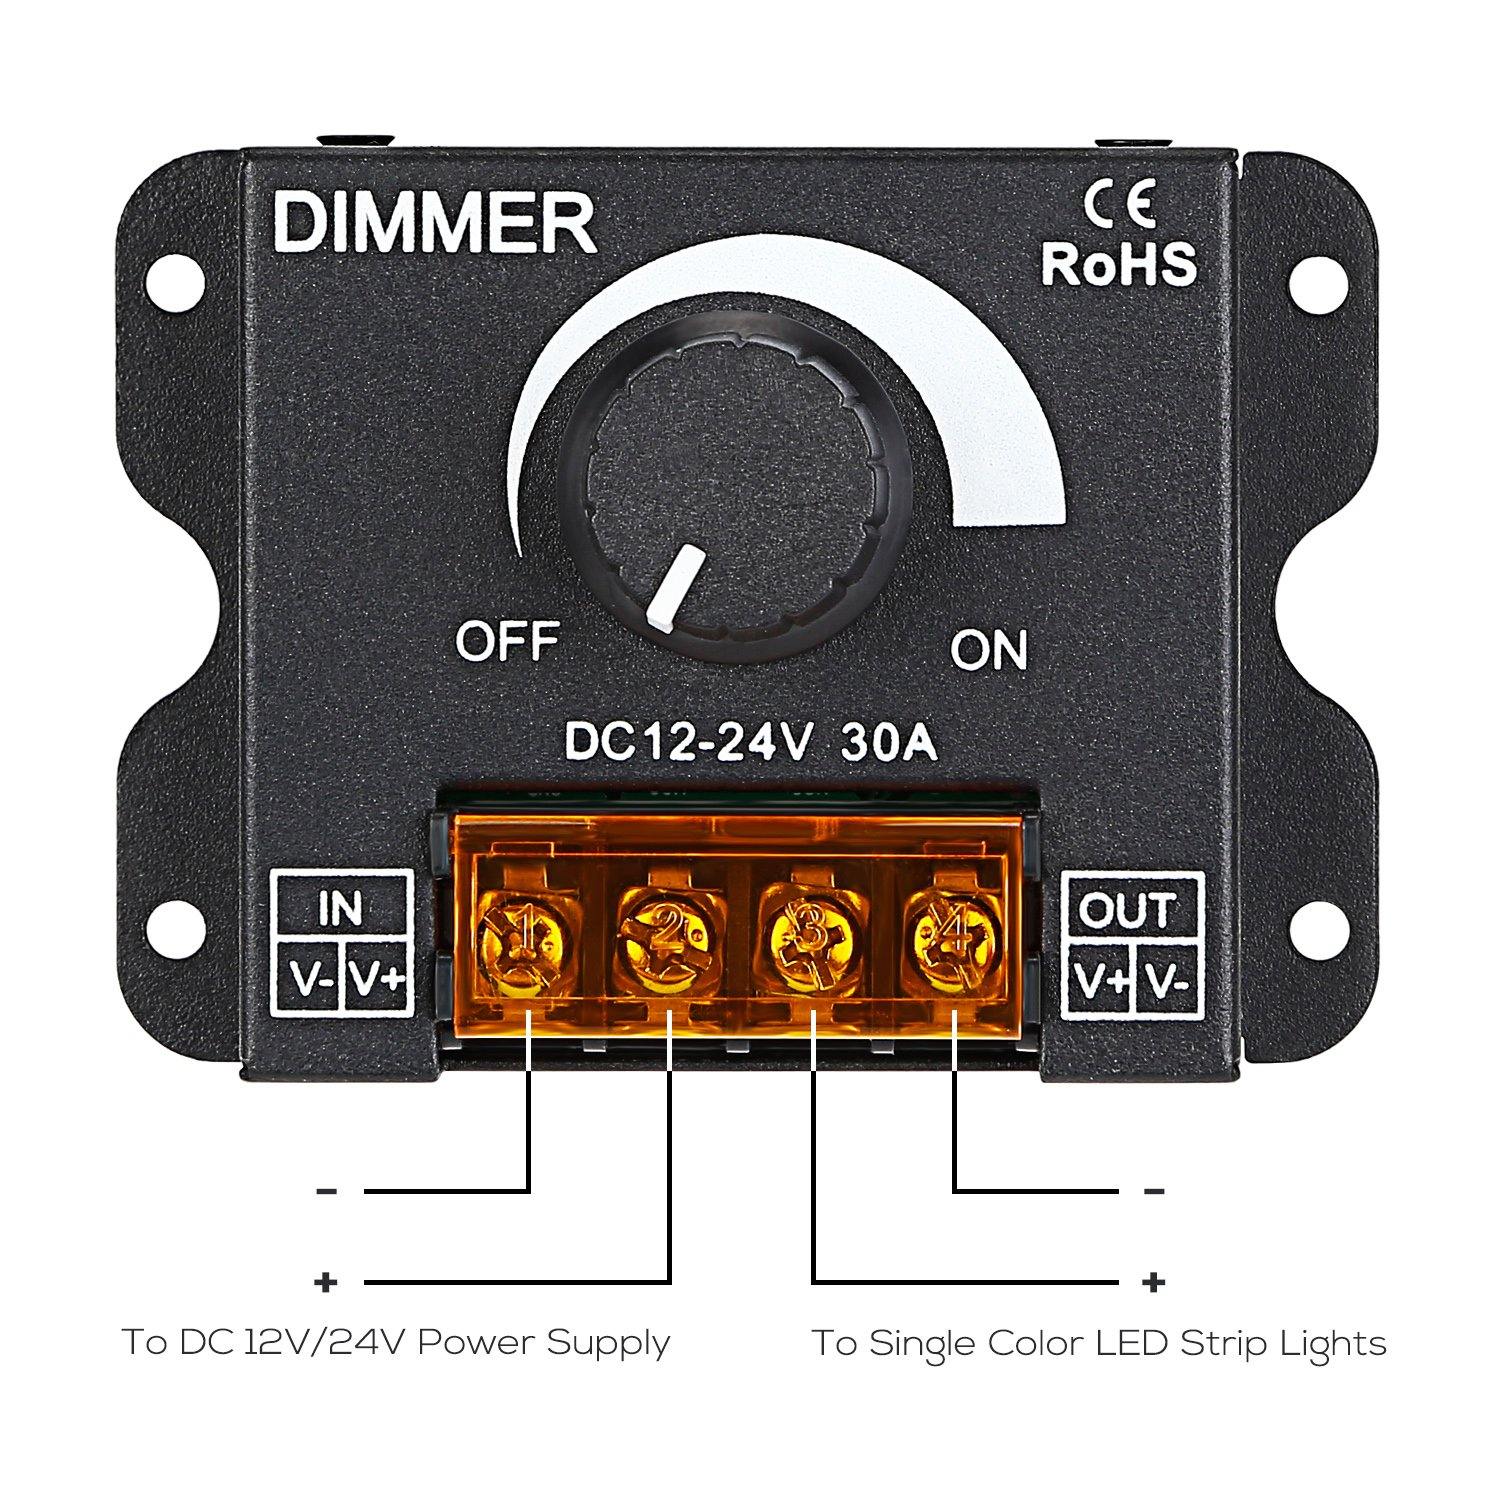 TORCHSTAR PWM Dimming Controller for LED Strip Light, DC 12V - 24V Dimmer Knob ON/OFF Switch with Aluminum Housing, Single Channel 30A 5050 3538 5630 Single Color Light Ribbon by TORCHSTAR (Image #3)